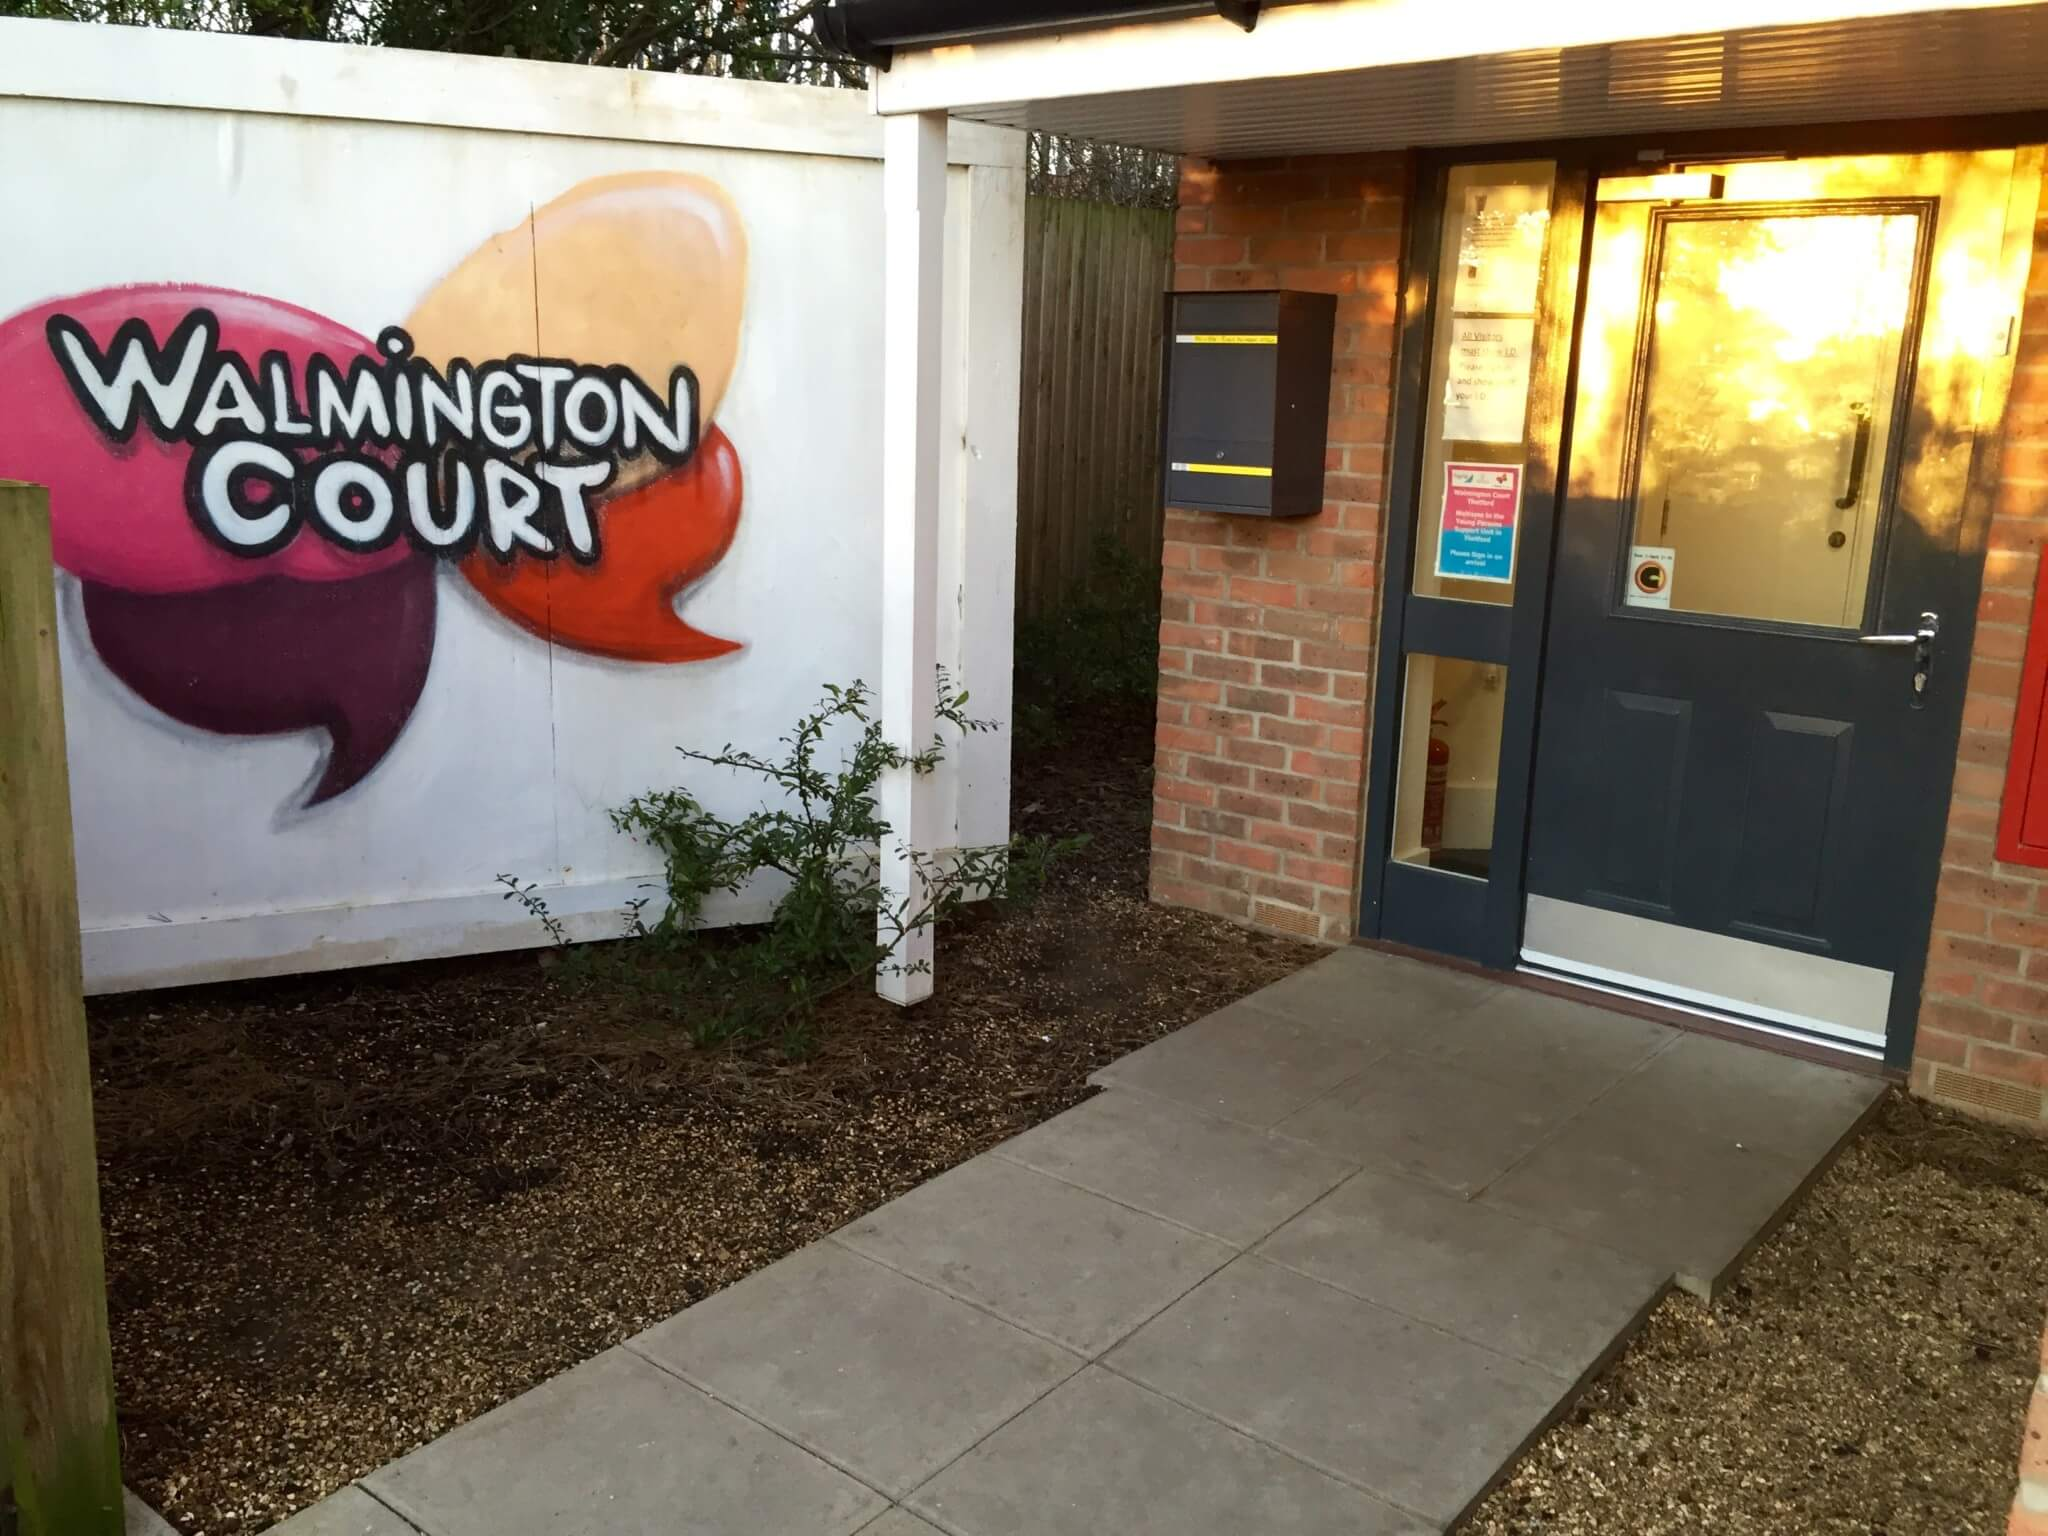 Walmington Court front door entrance with butterfly logo